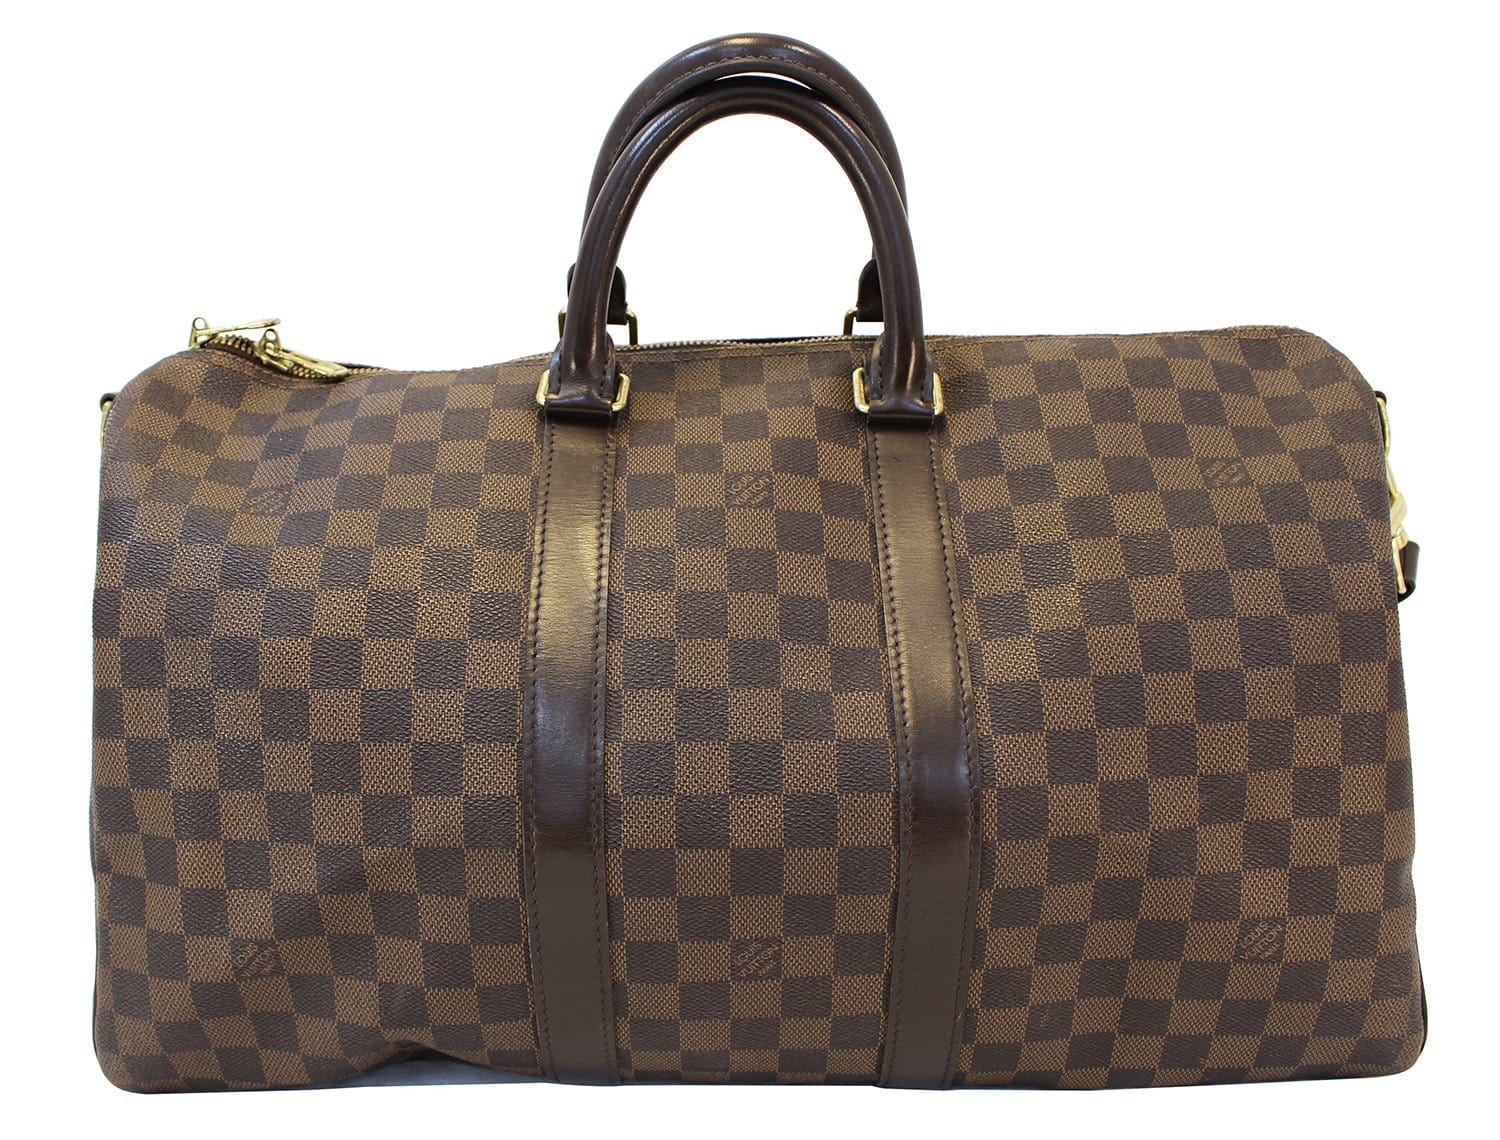 e6c5fbe66731 LOUIS VUITTON Damier Ebene Keepall 45 Bandouliere Travel Bag - 30% Off